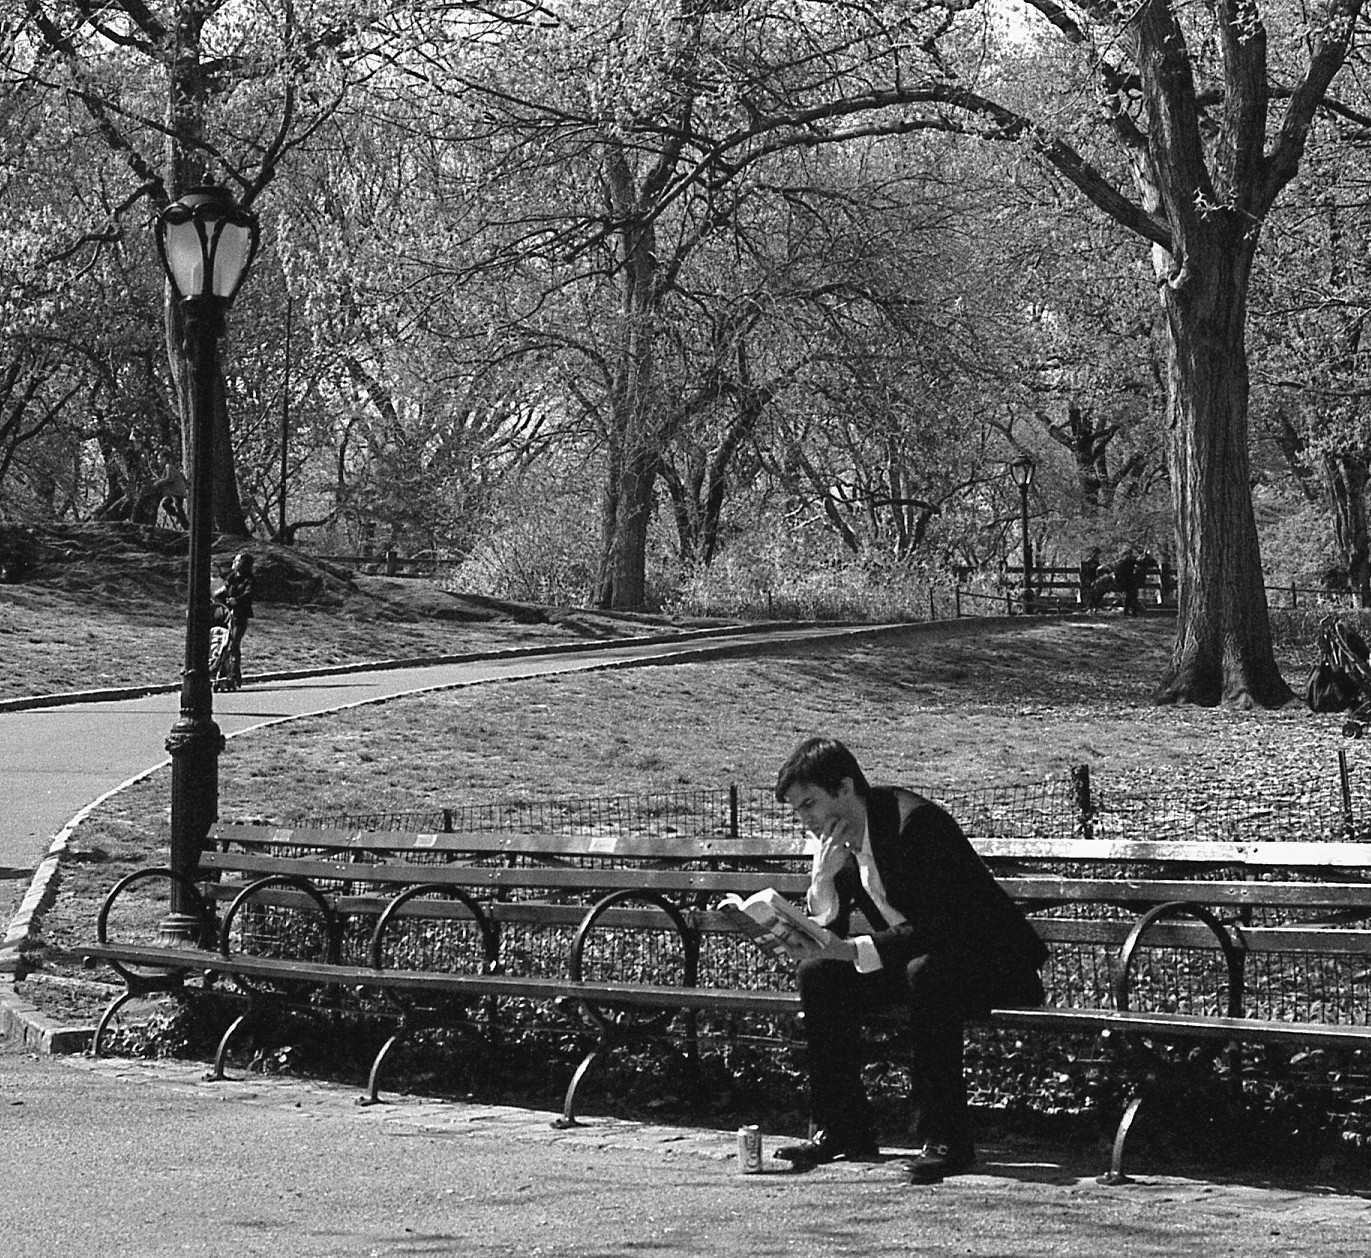 Black and white photo of a man in a suit reading a book on a park bench, looks like he is really concentrating on it